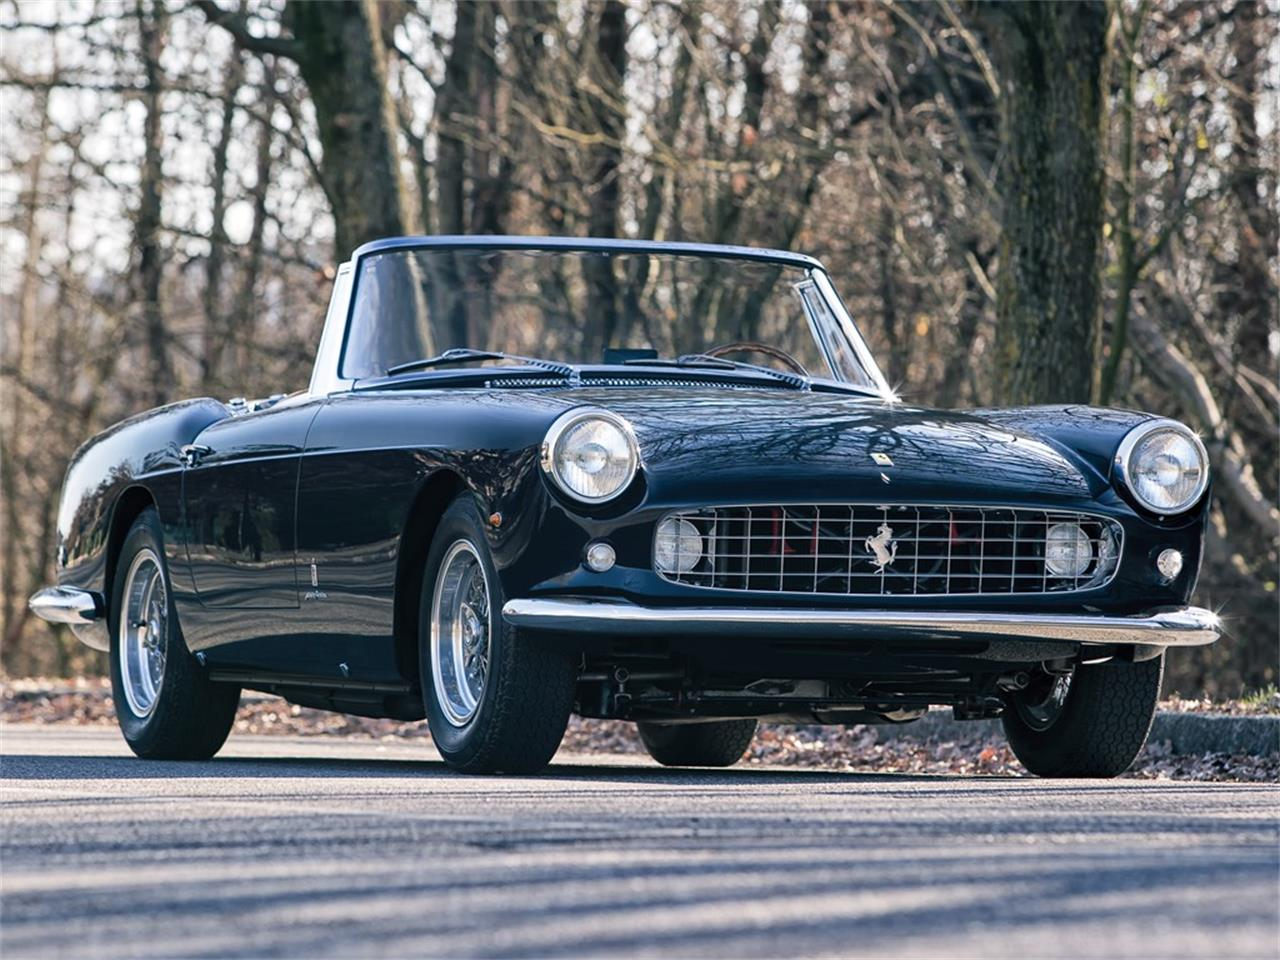 Large Picture of 1960 250 GT Cabriolet Series II located in Florida Auction Vehicle Offered by RM Sotheby's - PGXI